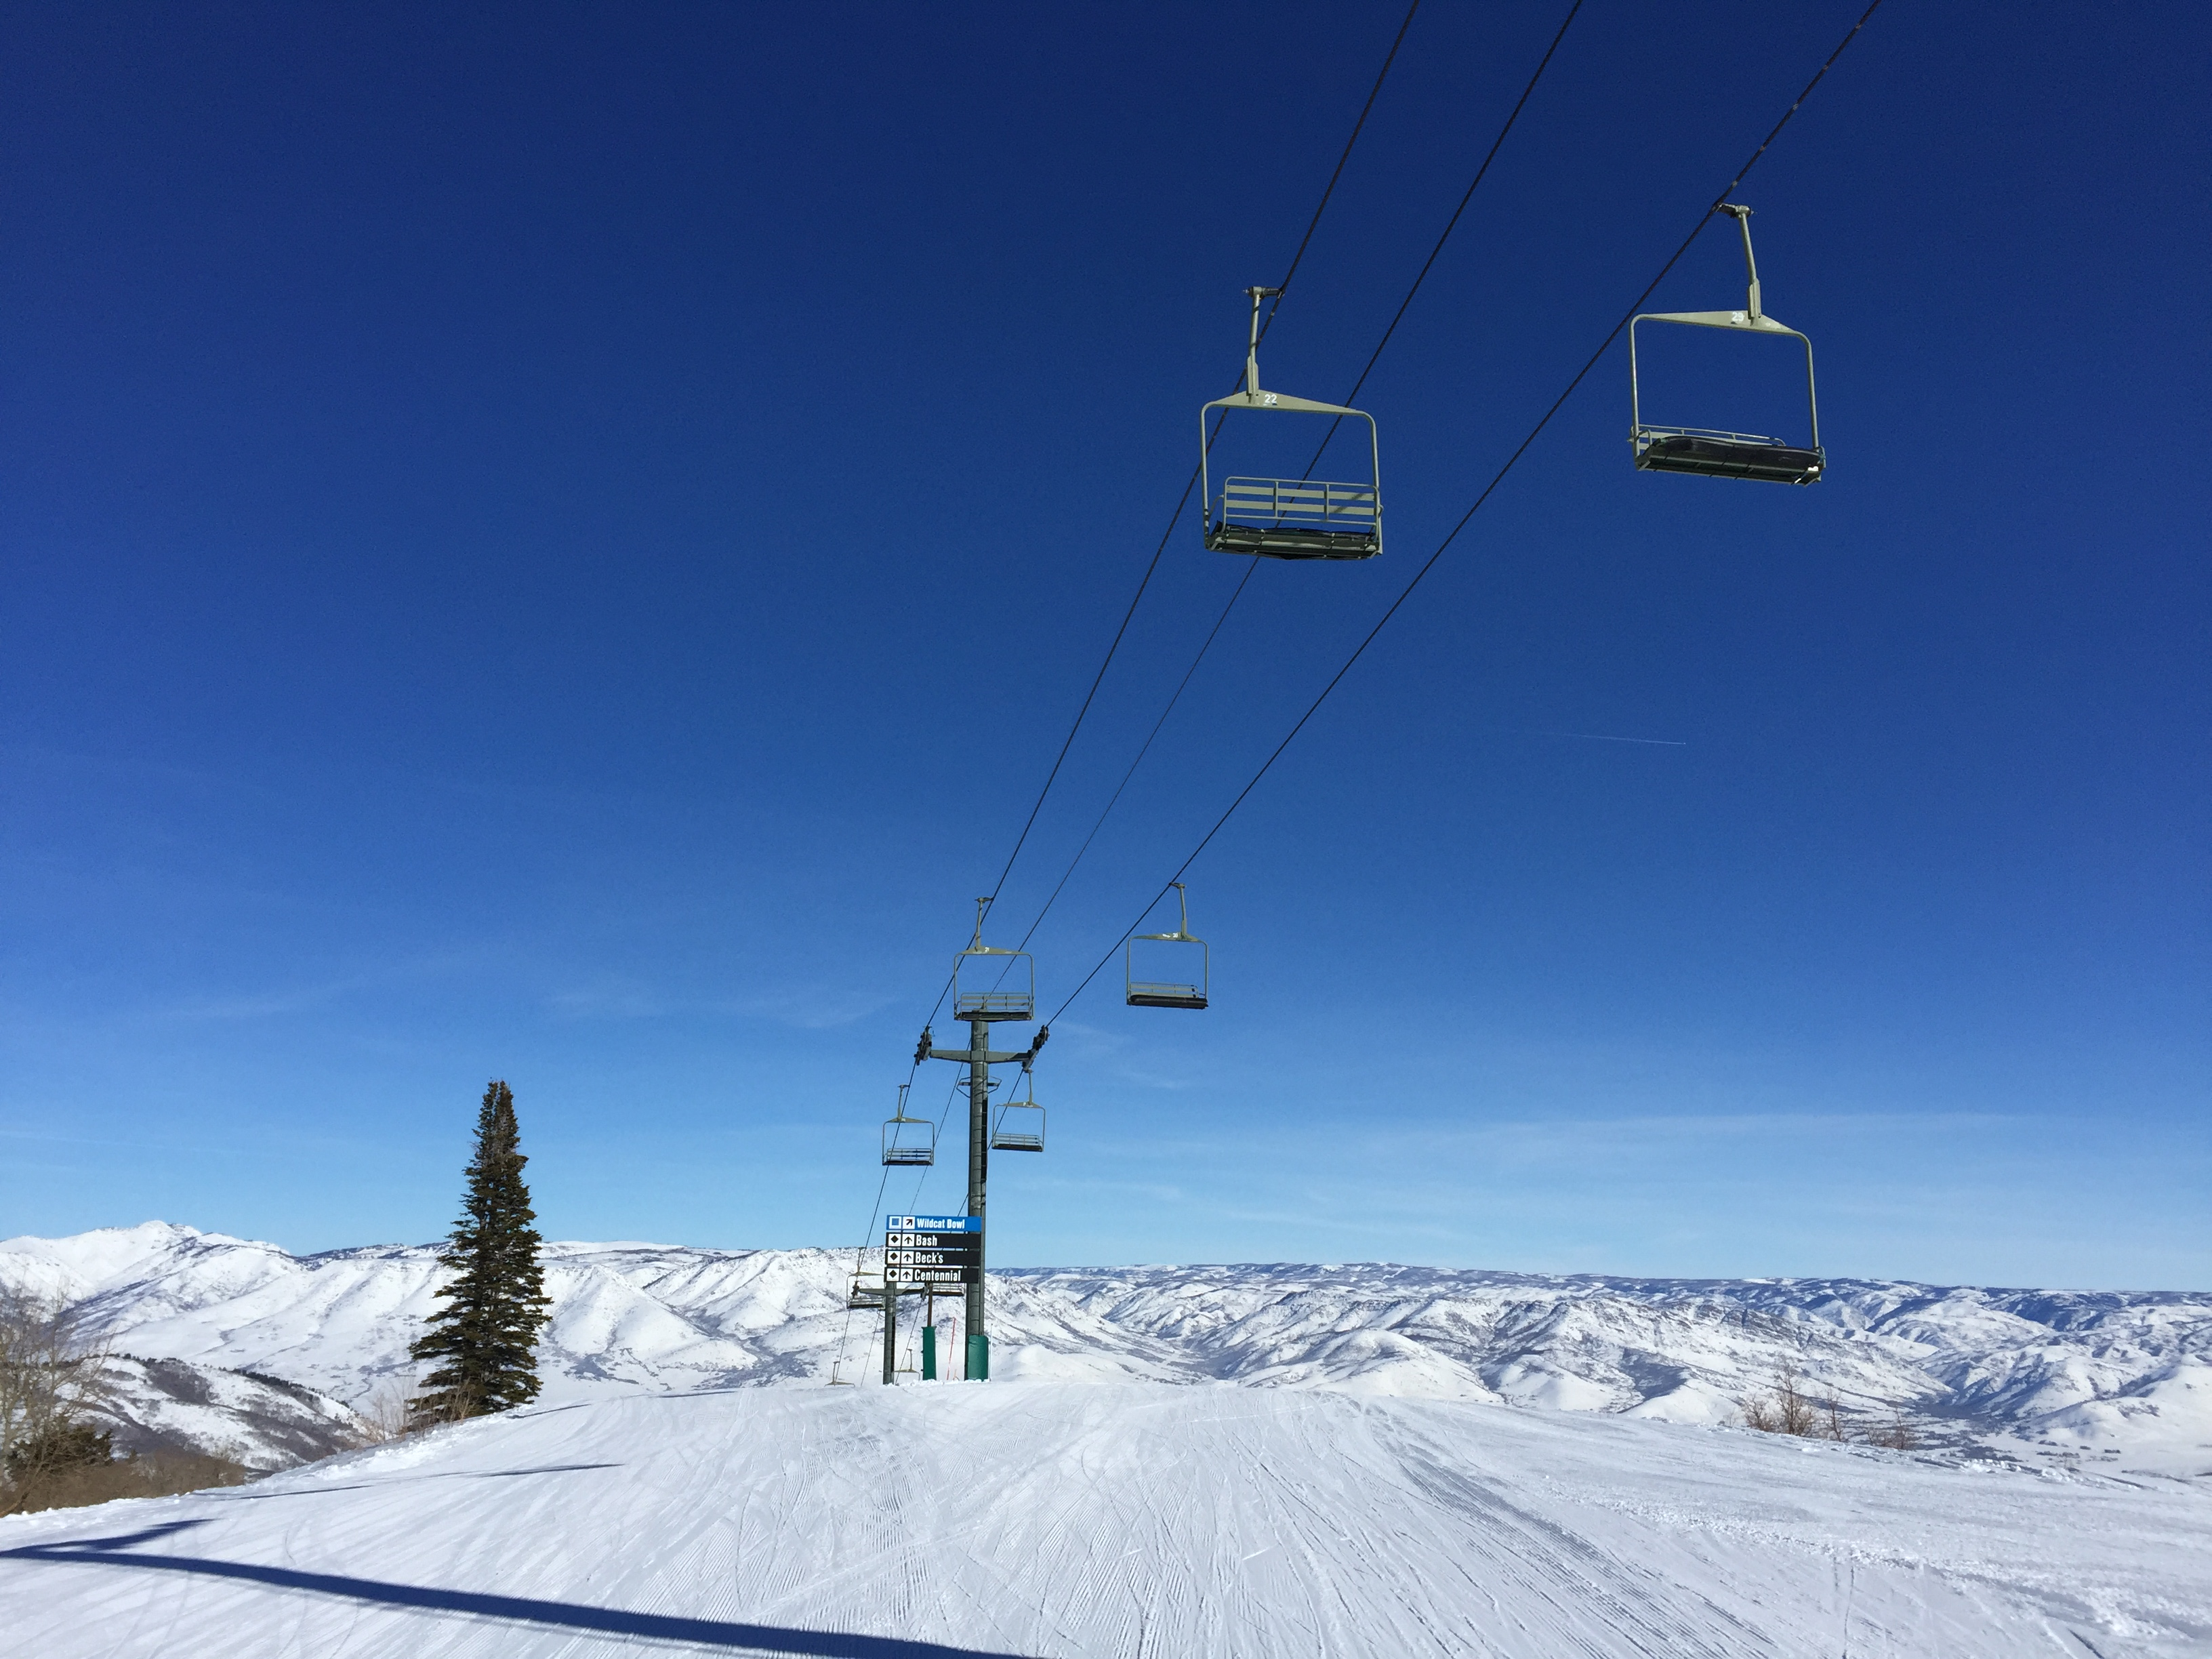 Snowbasin Resort Announces New High Speed Wildcat Chairlift for